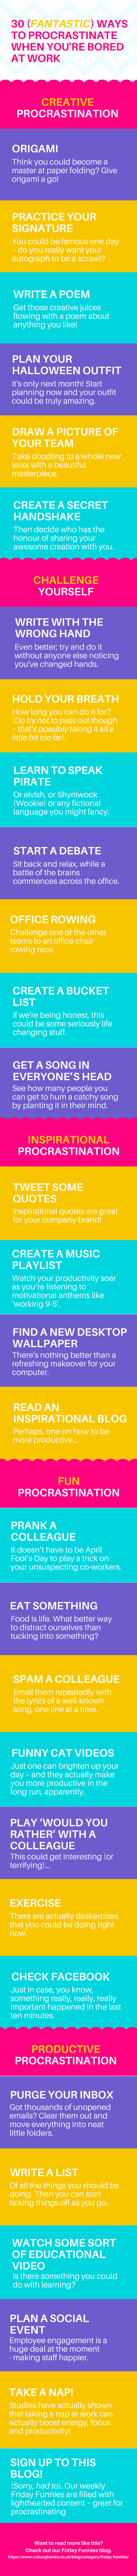 30 (Fantastic) Ways to Procrastinate When You're Bored at Work infographic